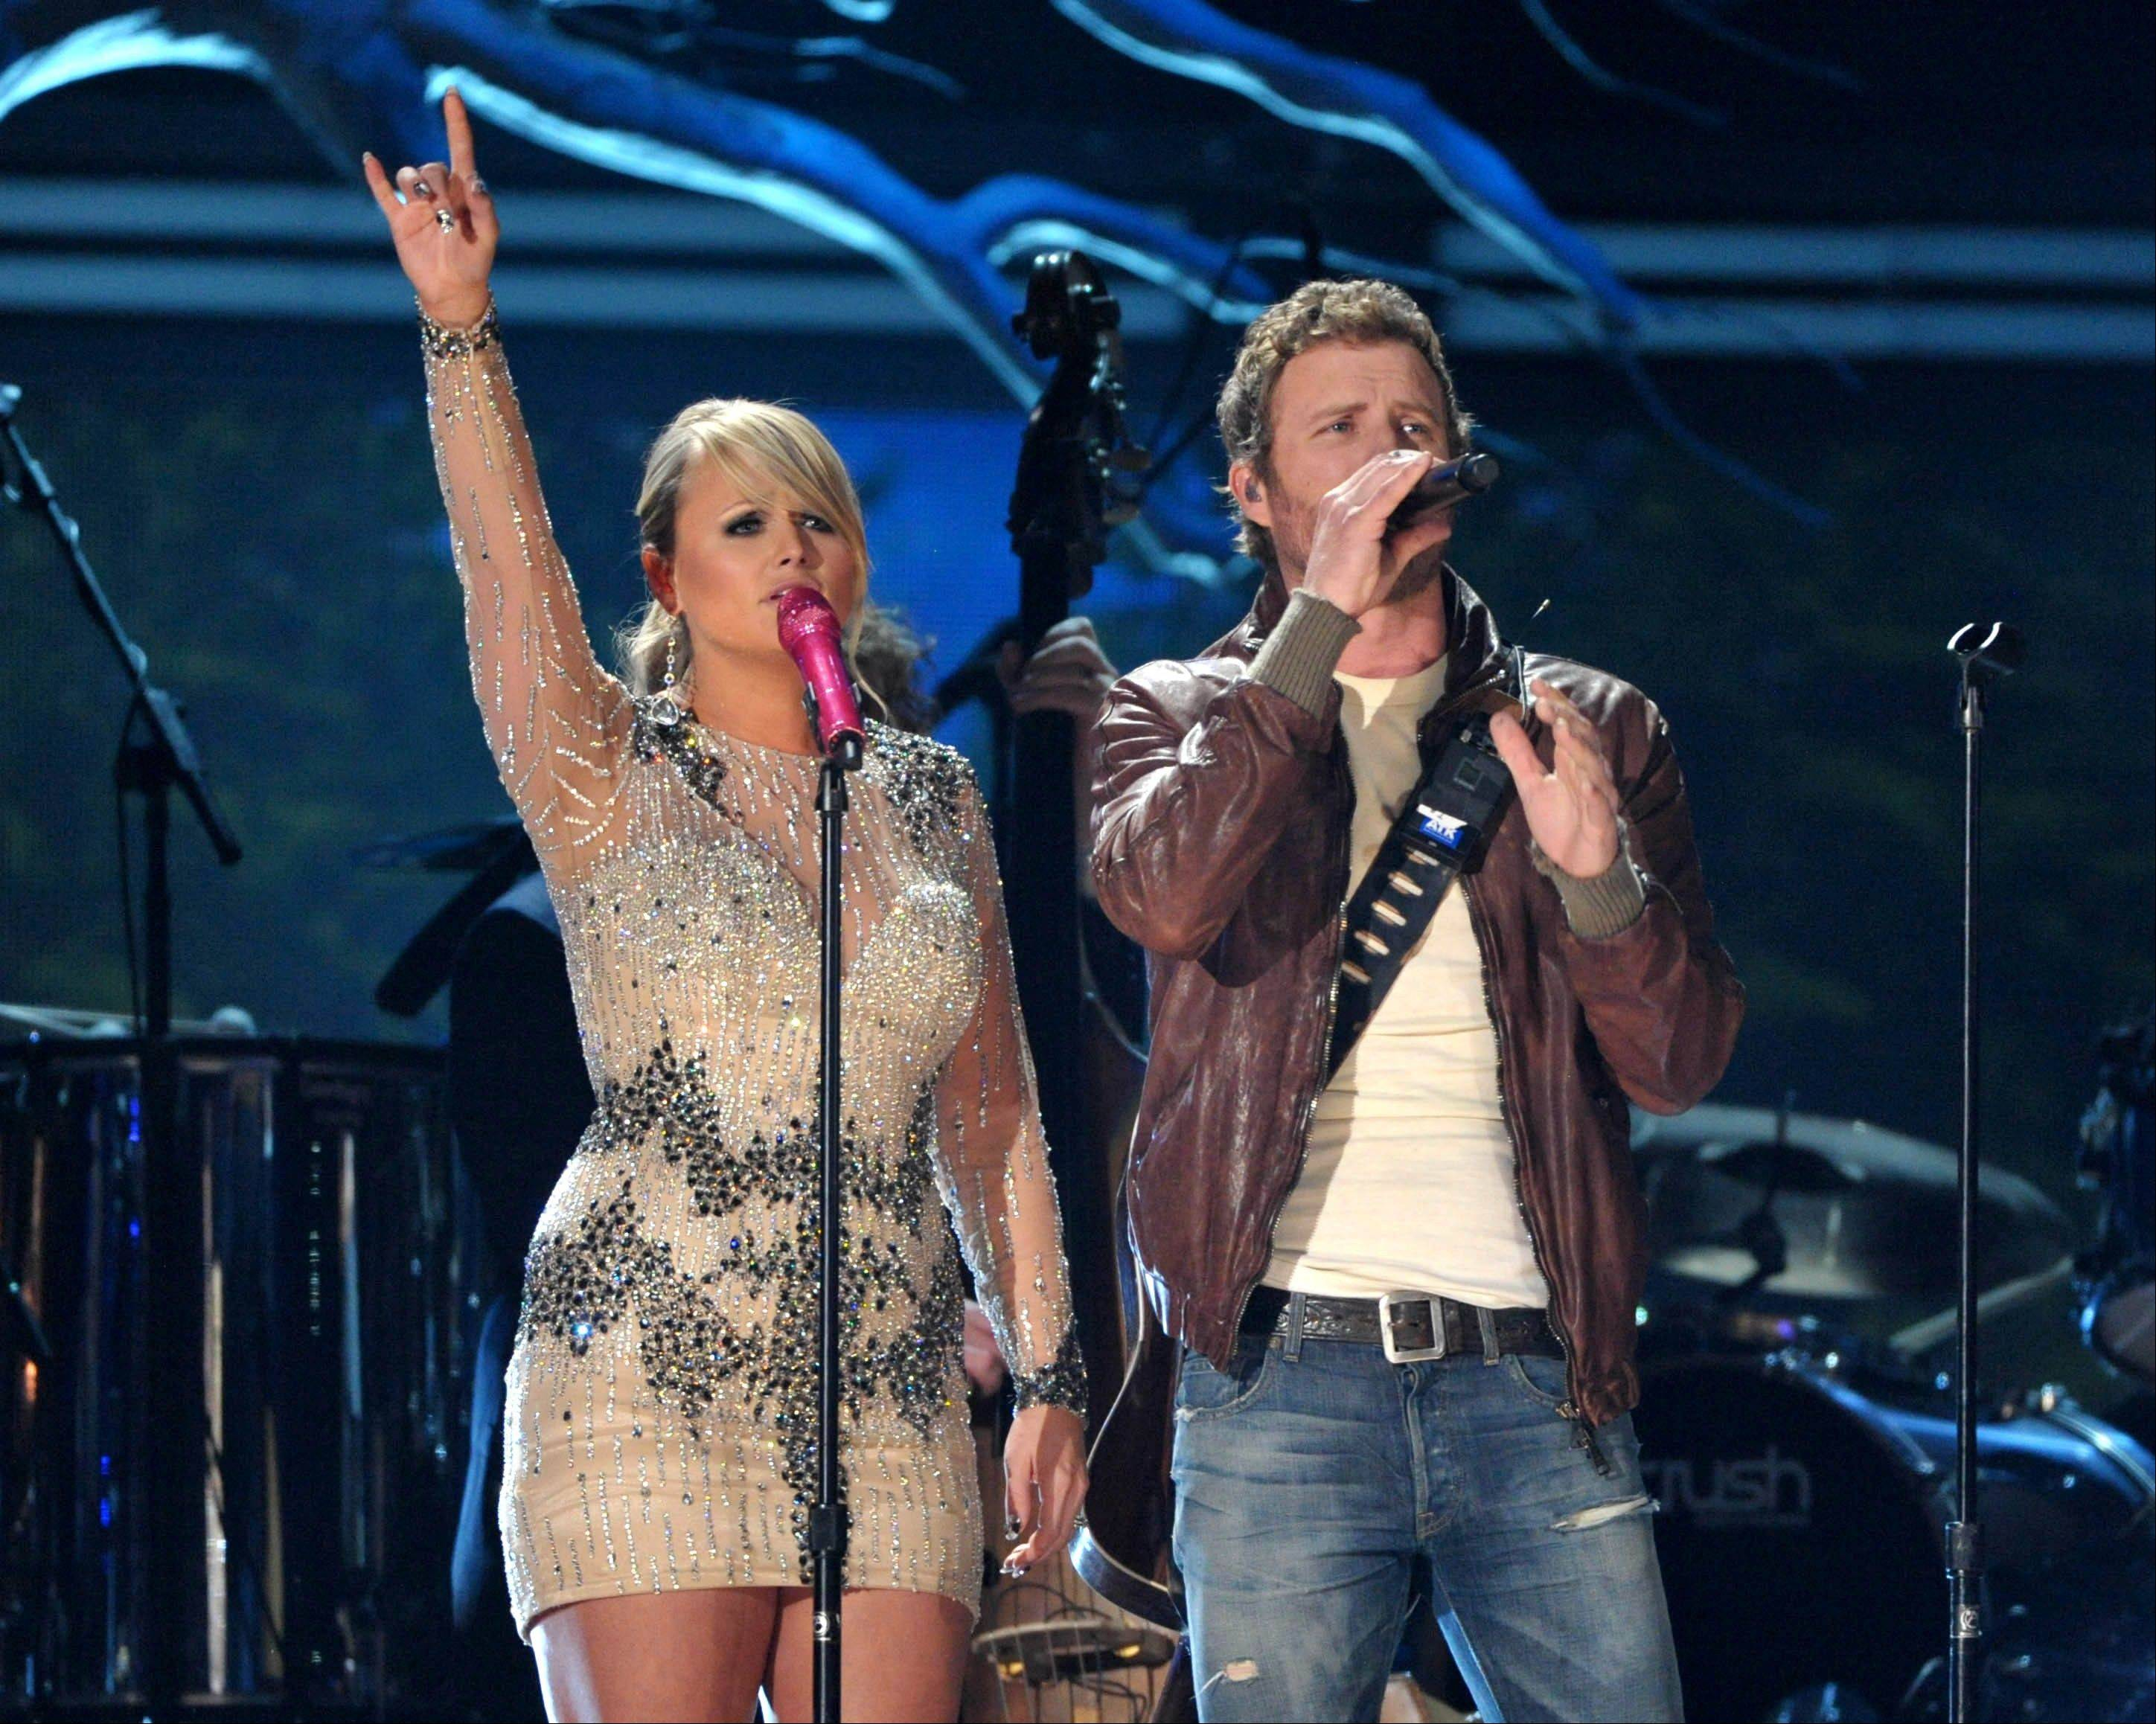 Country music stars Miranda Lambert, left, and Dierks Bentley perform at the 55th annual Grammy Awards on Sunday, Feb. 10, 2013, in Los Angeles.